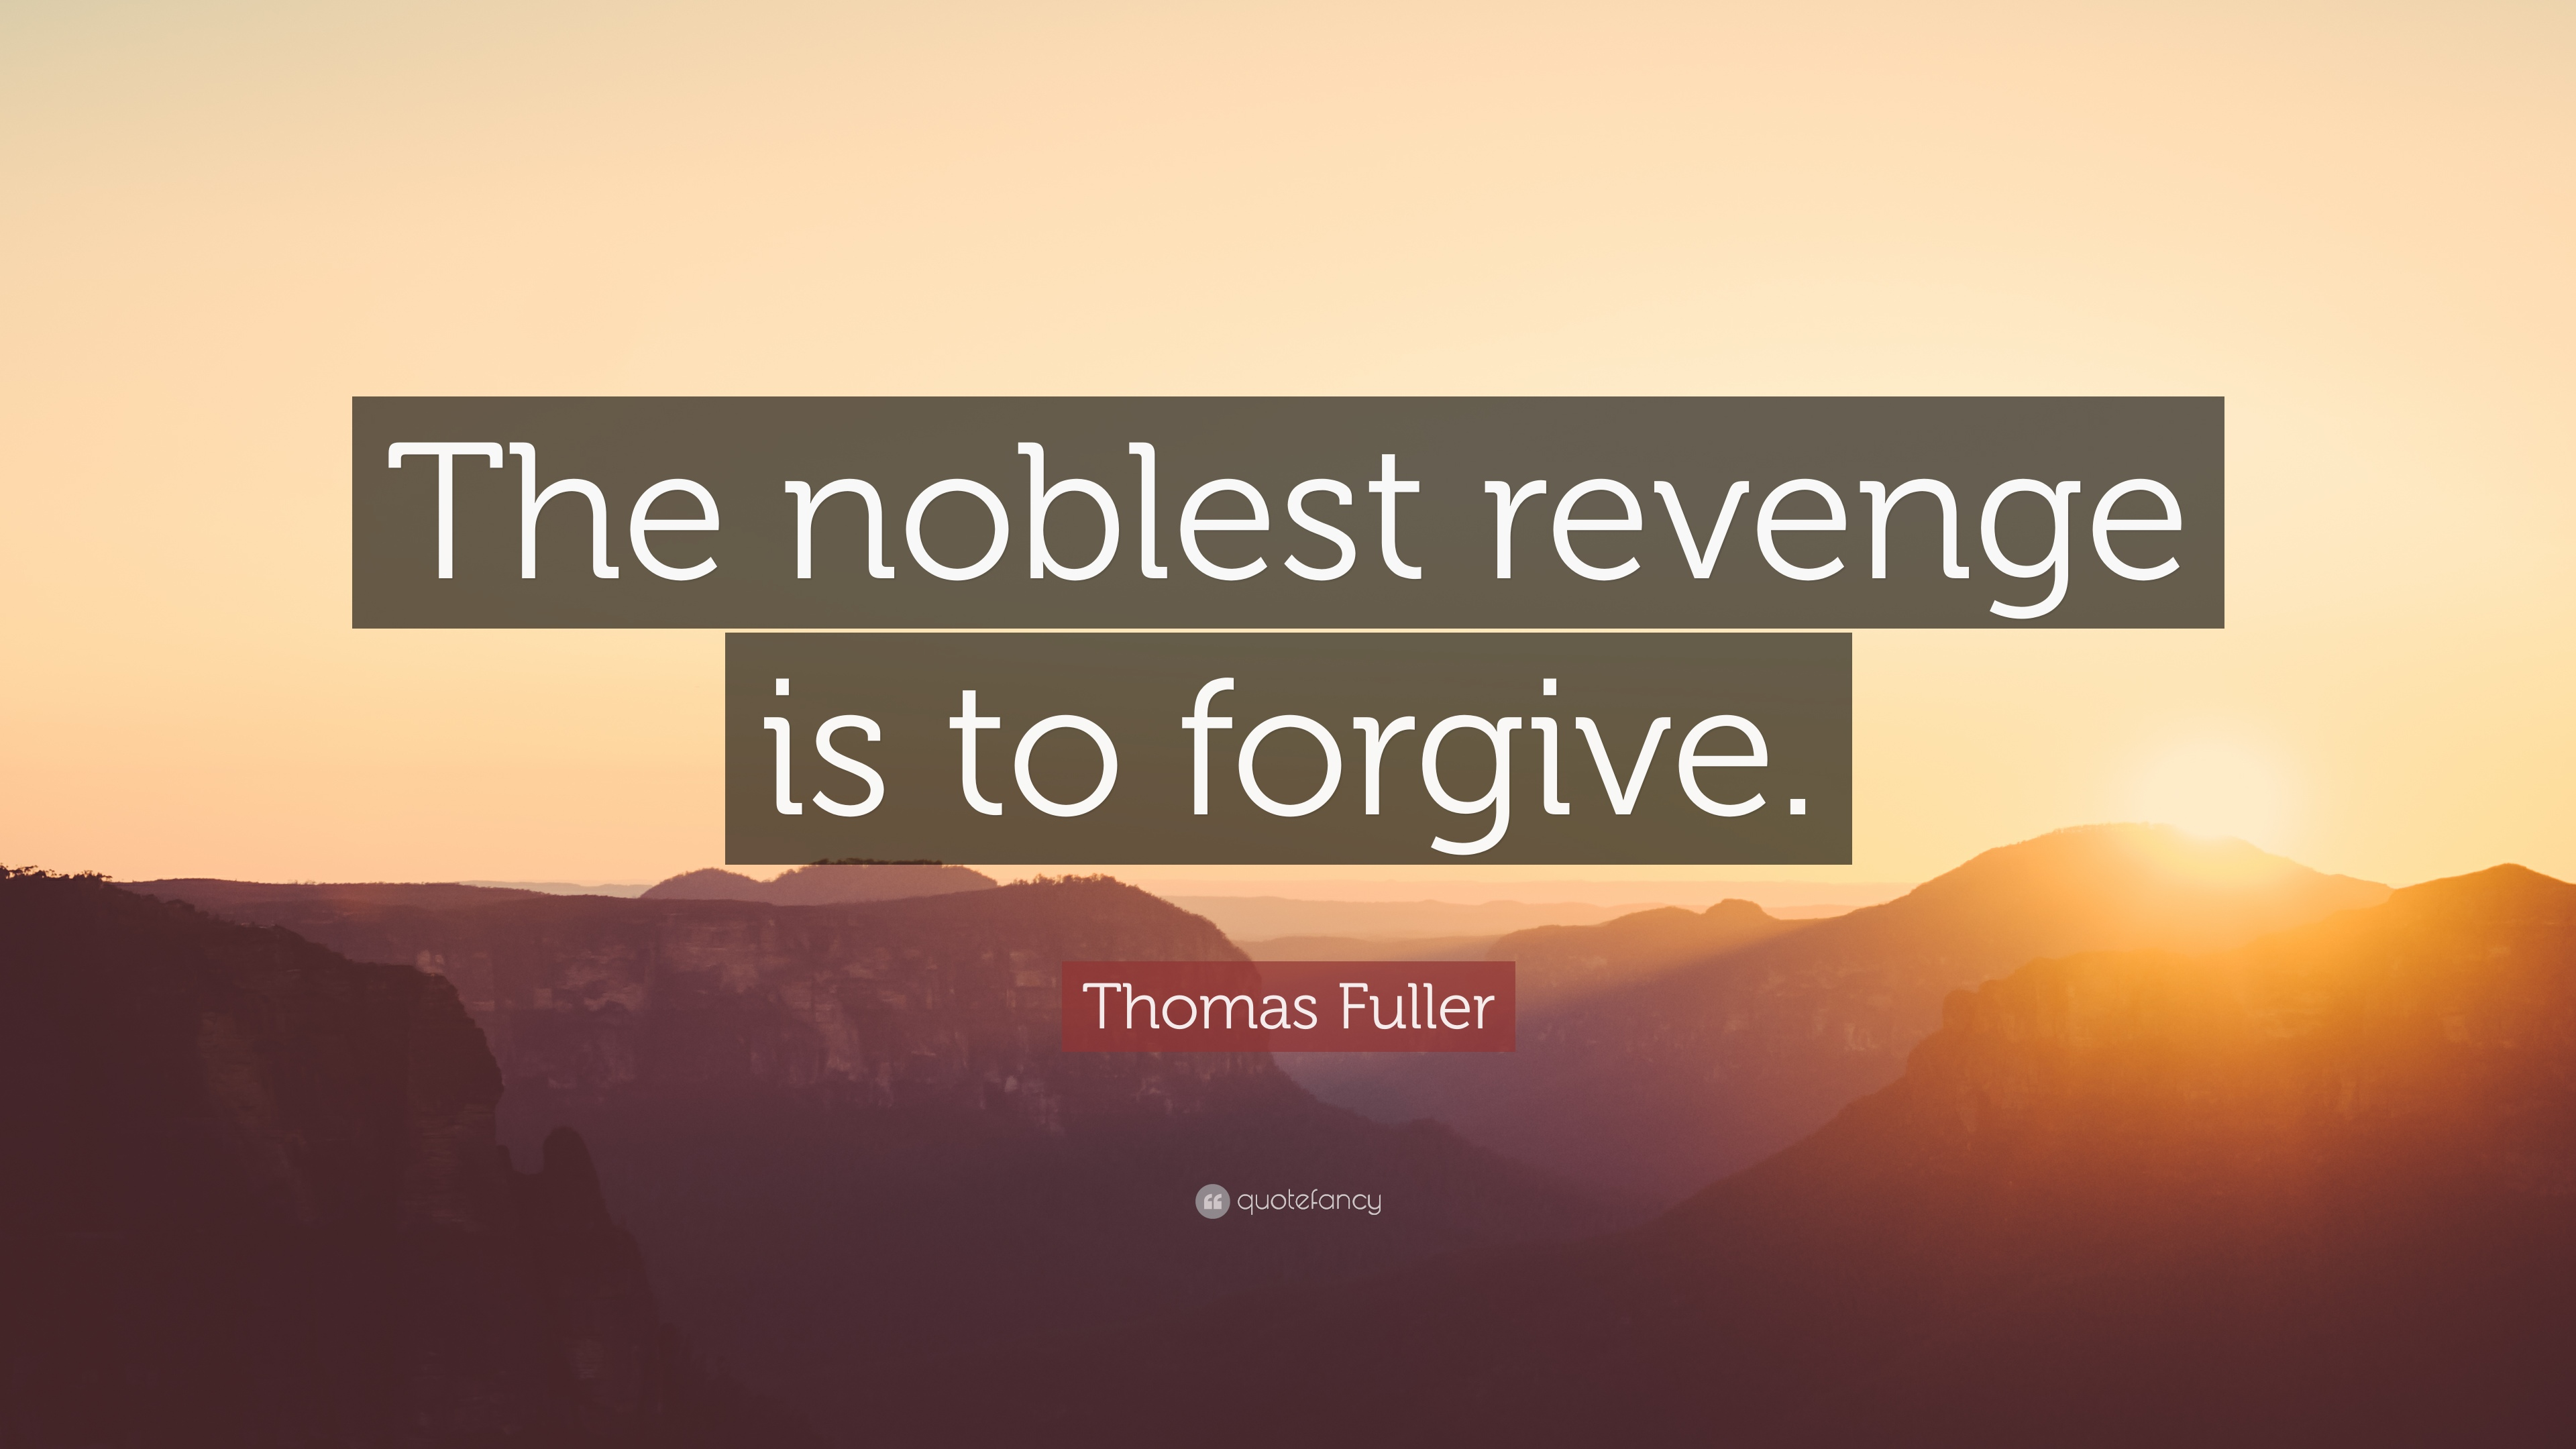 Thomas Fuller Quote: The noblest revenge is to forgive